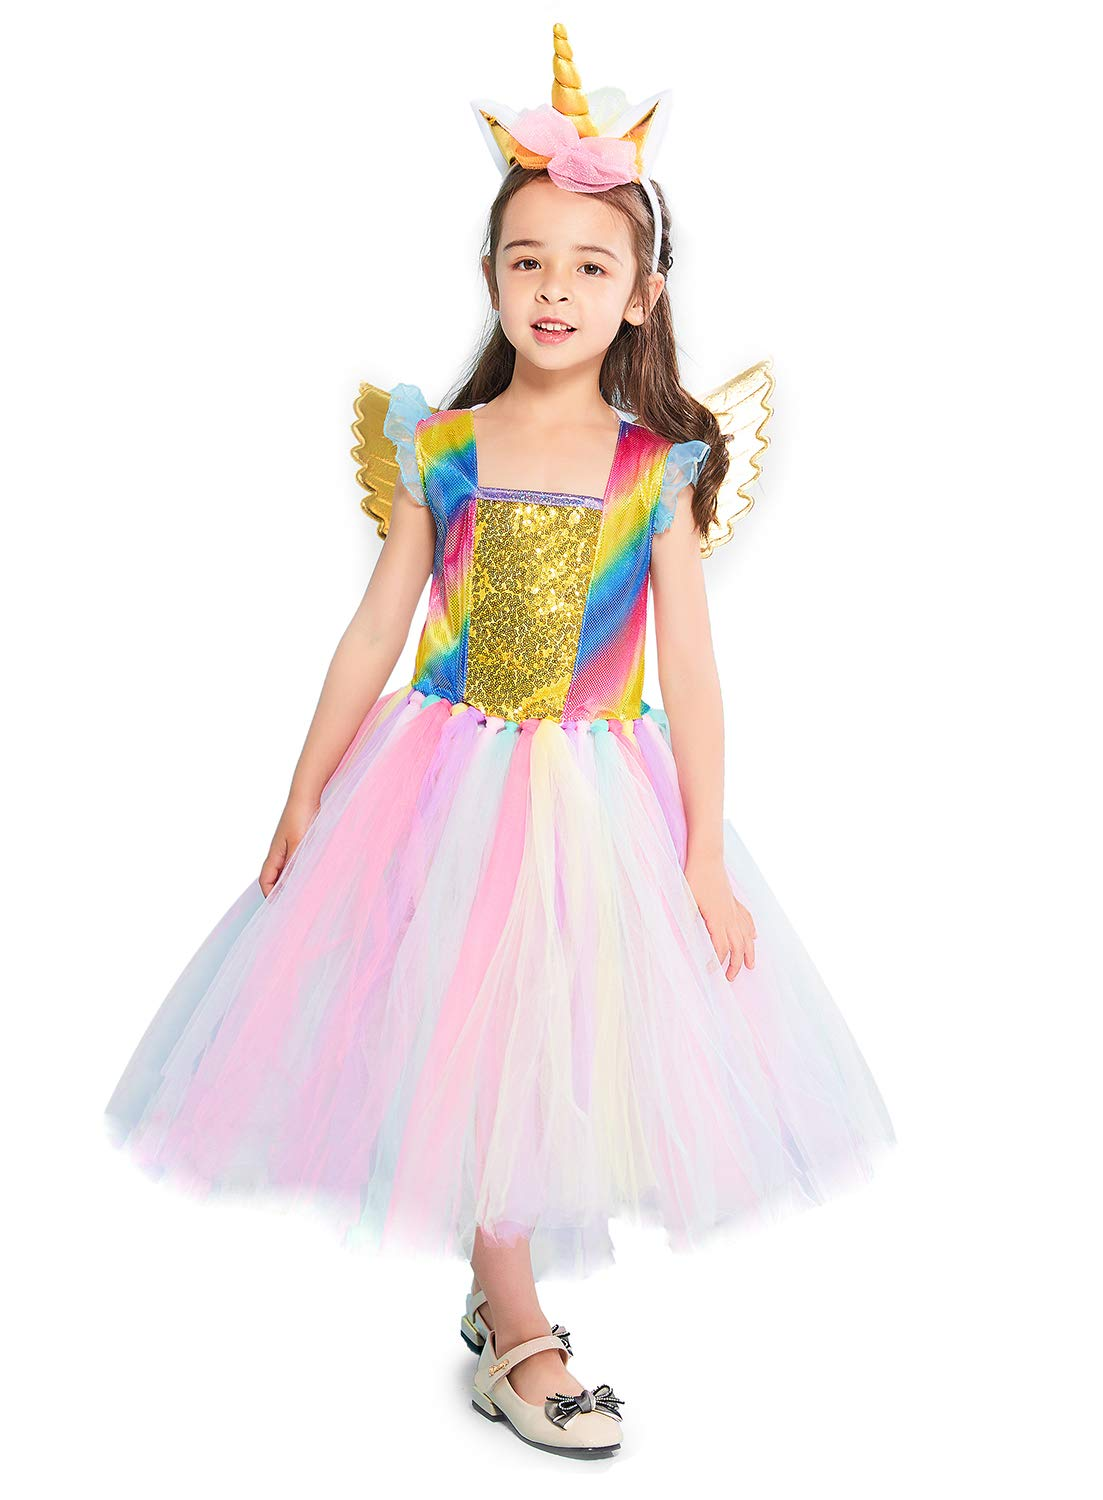 Rainbow Unicorn Costume Halloween Girls Dress Up Costumes for Party Special Occasion 3